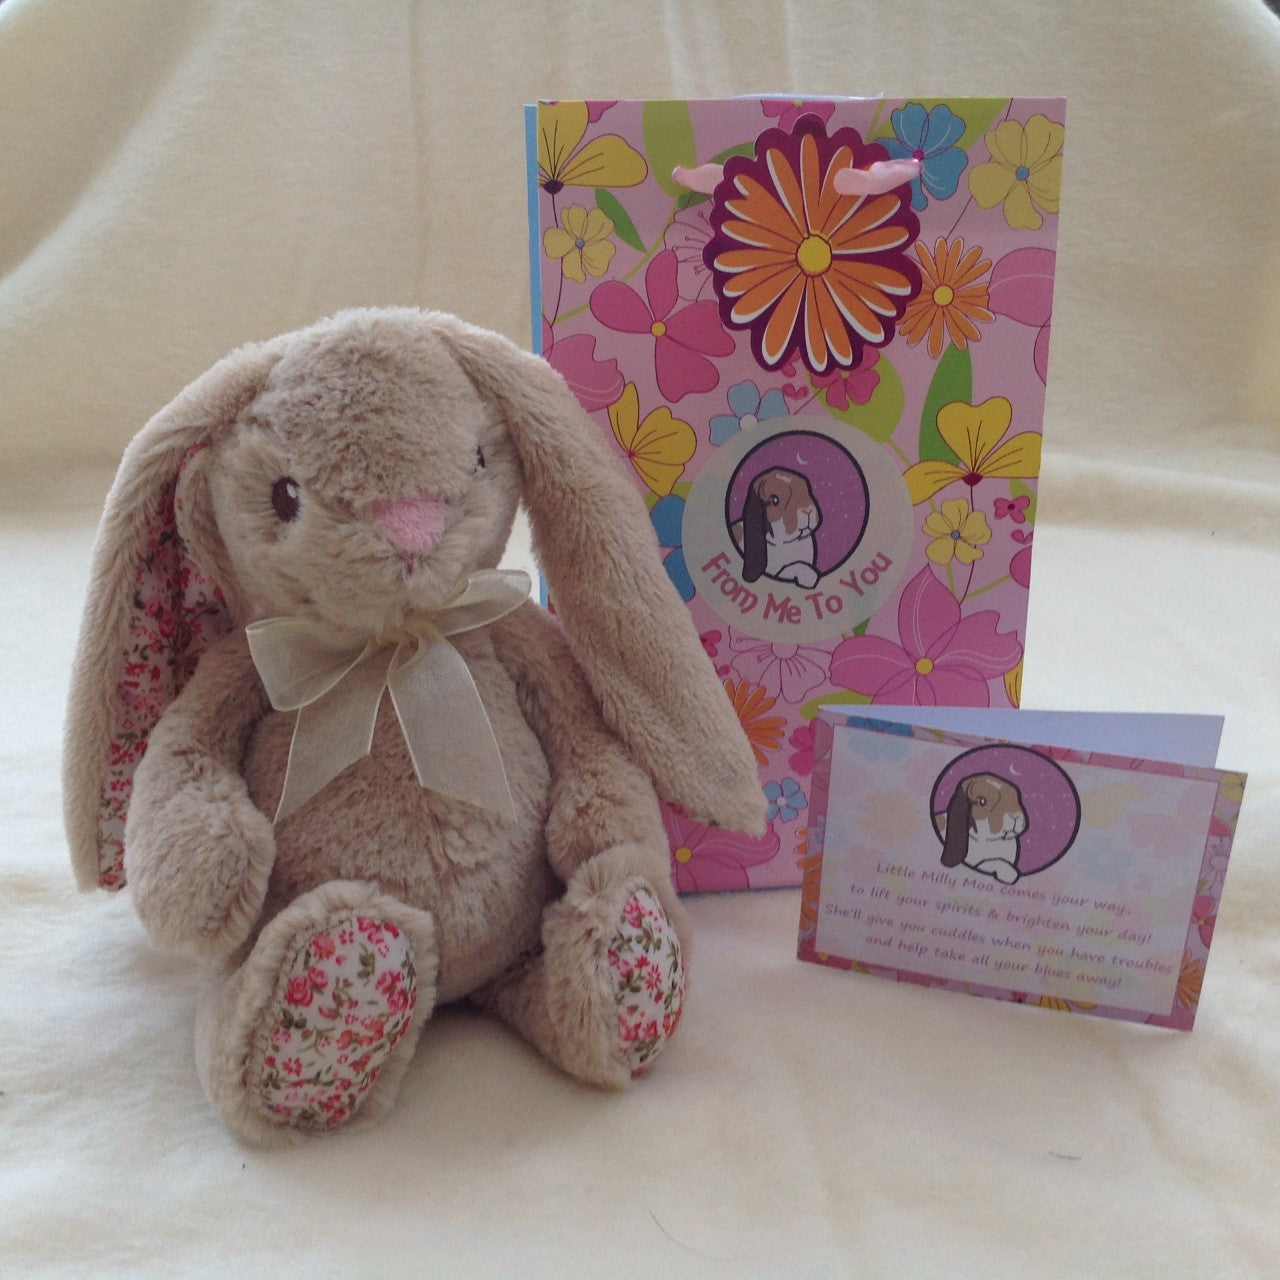 Milly Moo Cheer Up Bunny - Plush Bunny Gift